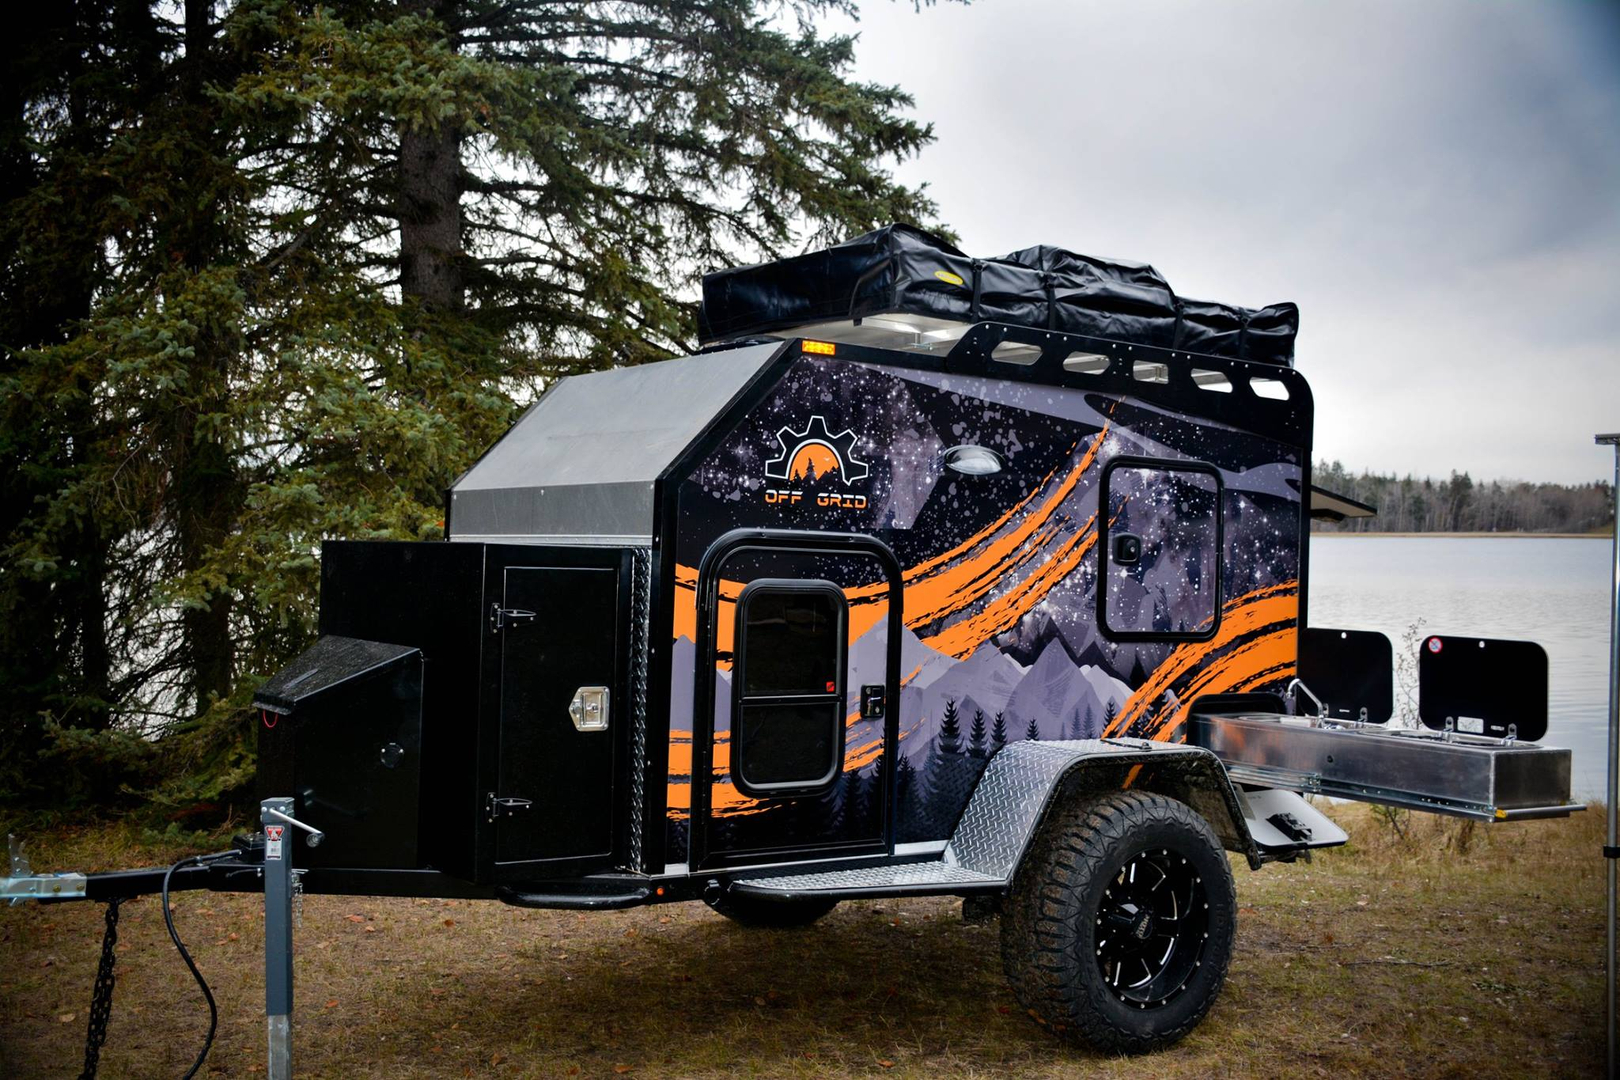 I Design And Fabricate Small Off Road Expedition Style Trailers Fully Spray Foam Insulated The Options Are Endless